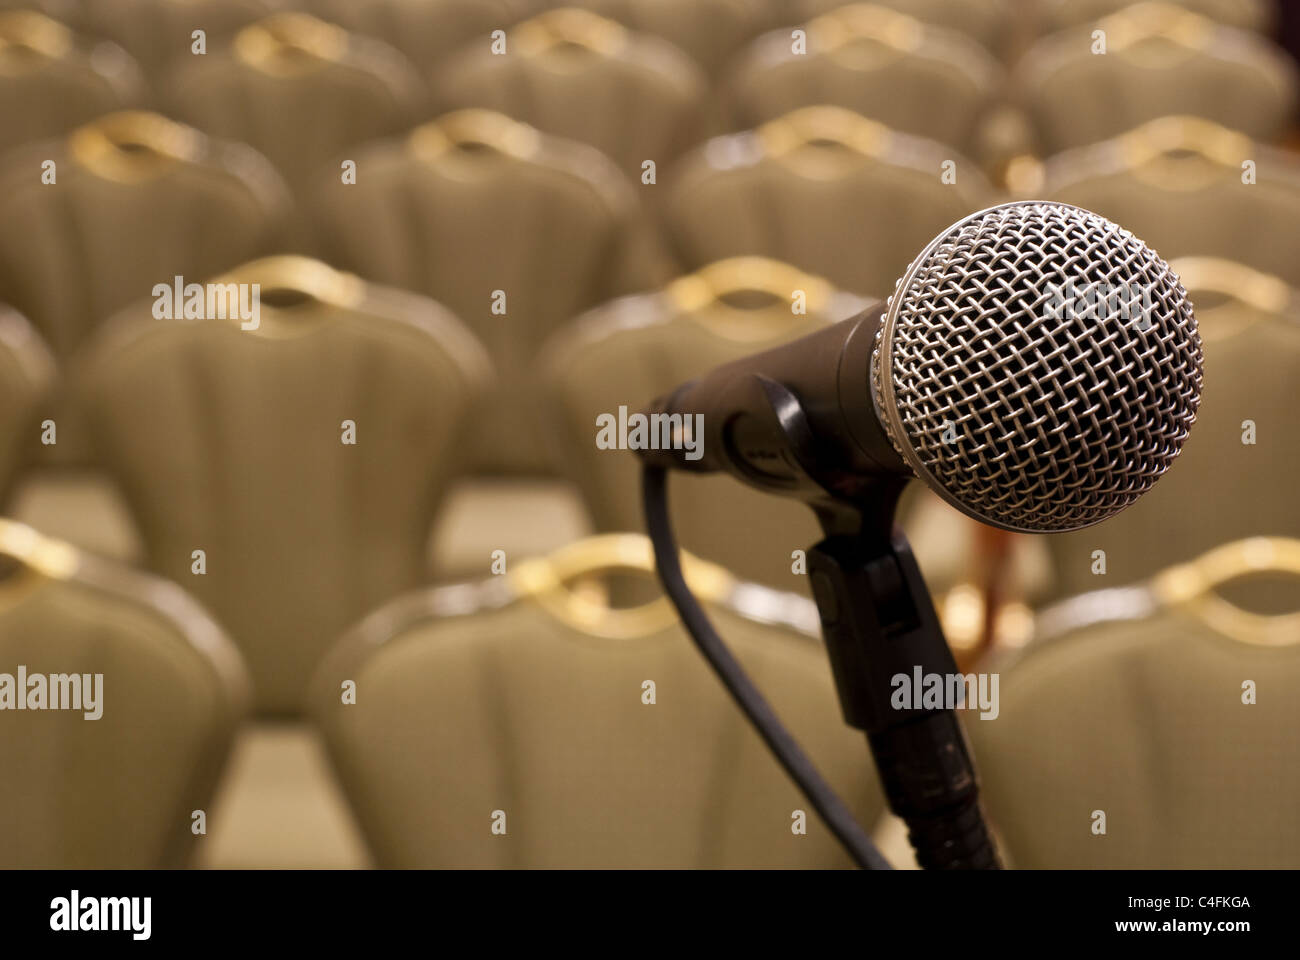 Microphone in front of several rows of empty chairs with shallow depth of field - Stock Image